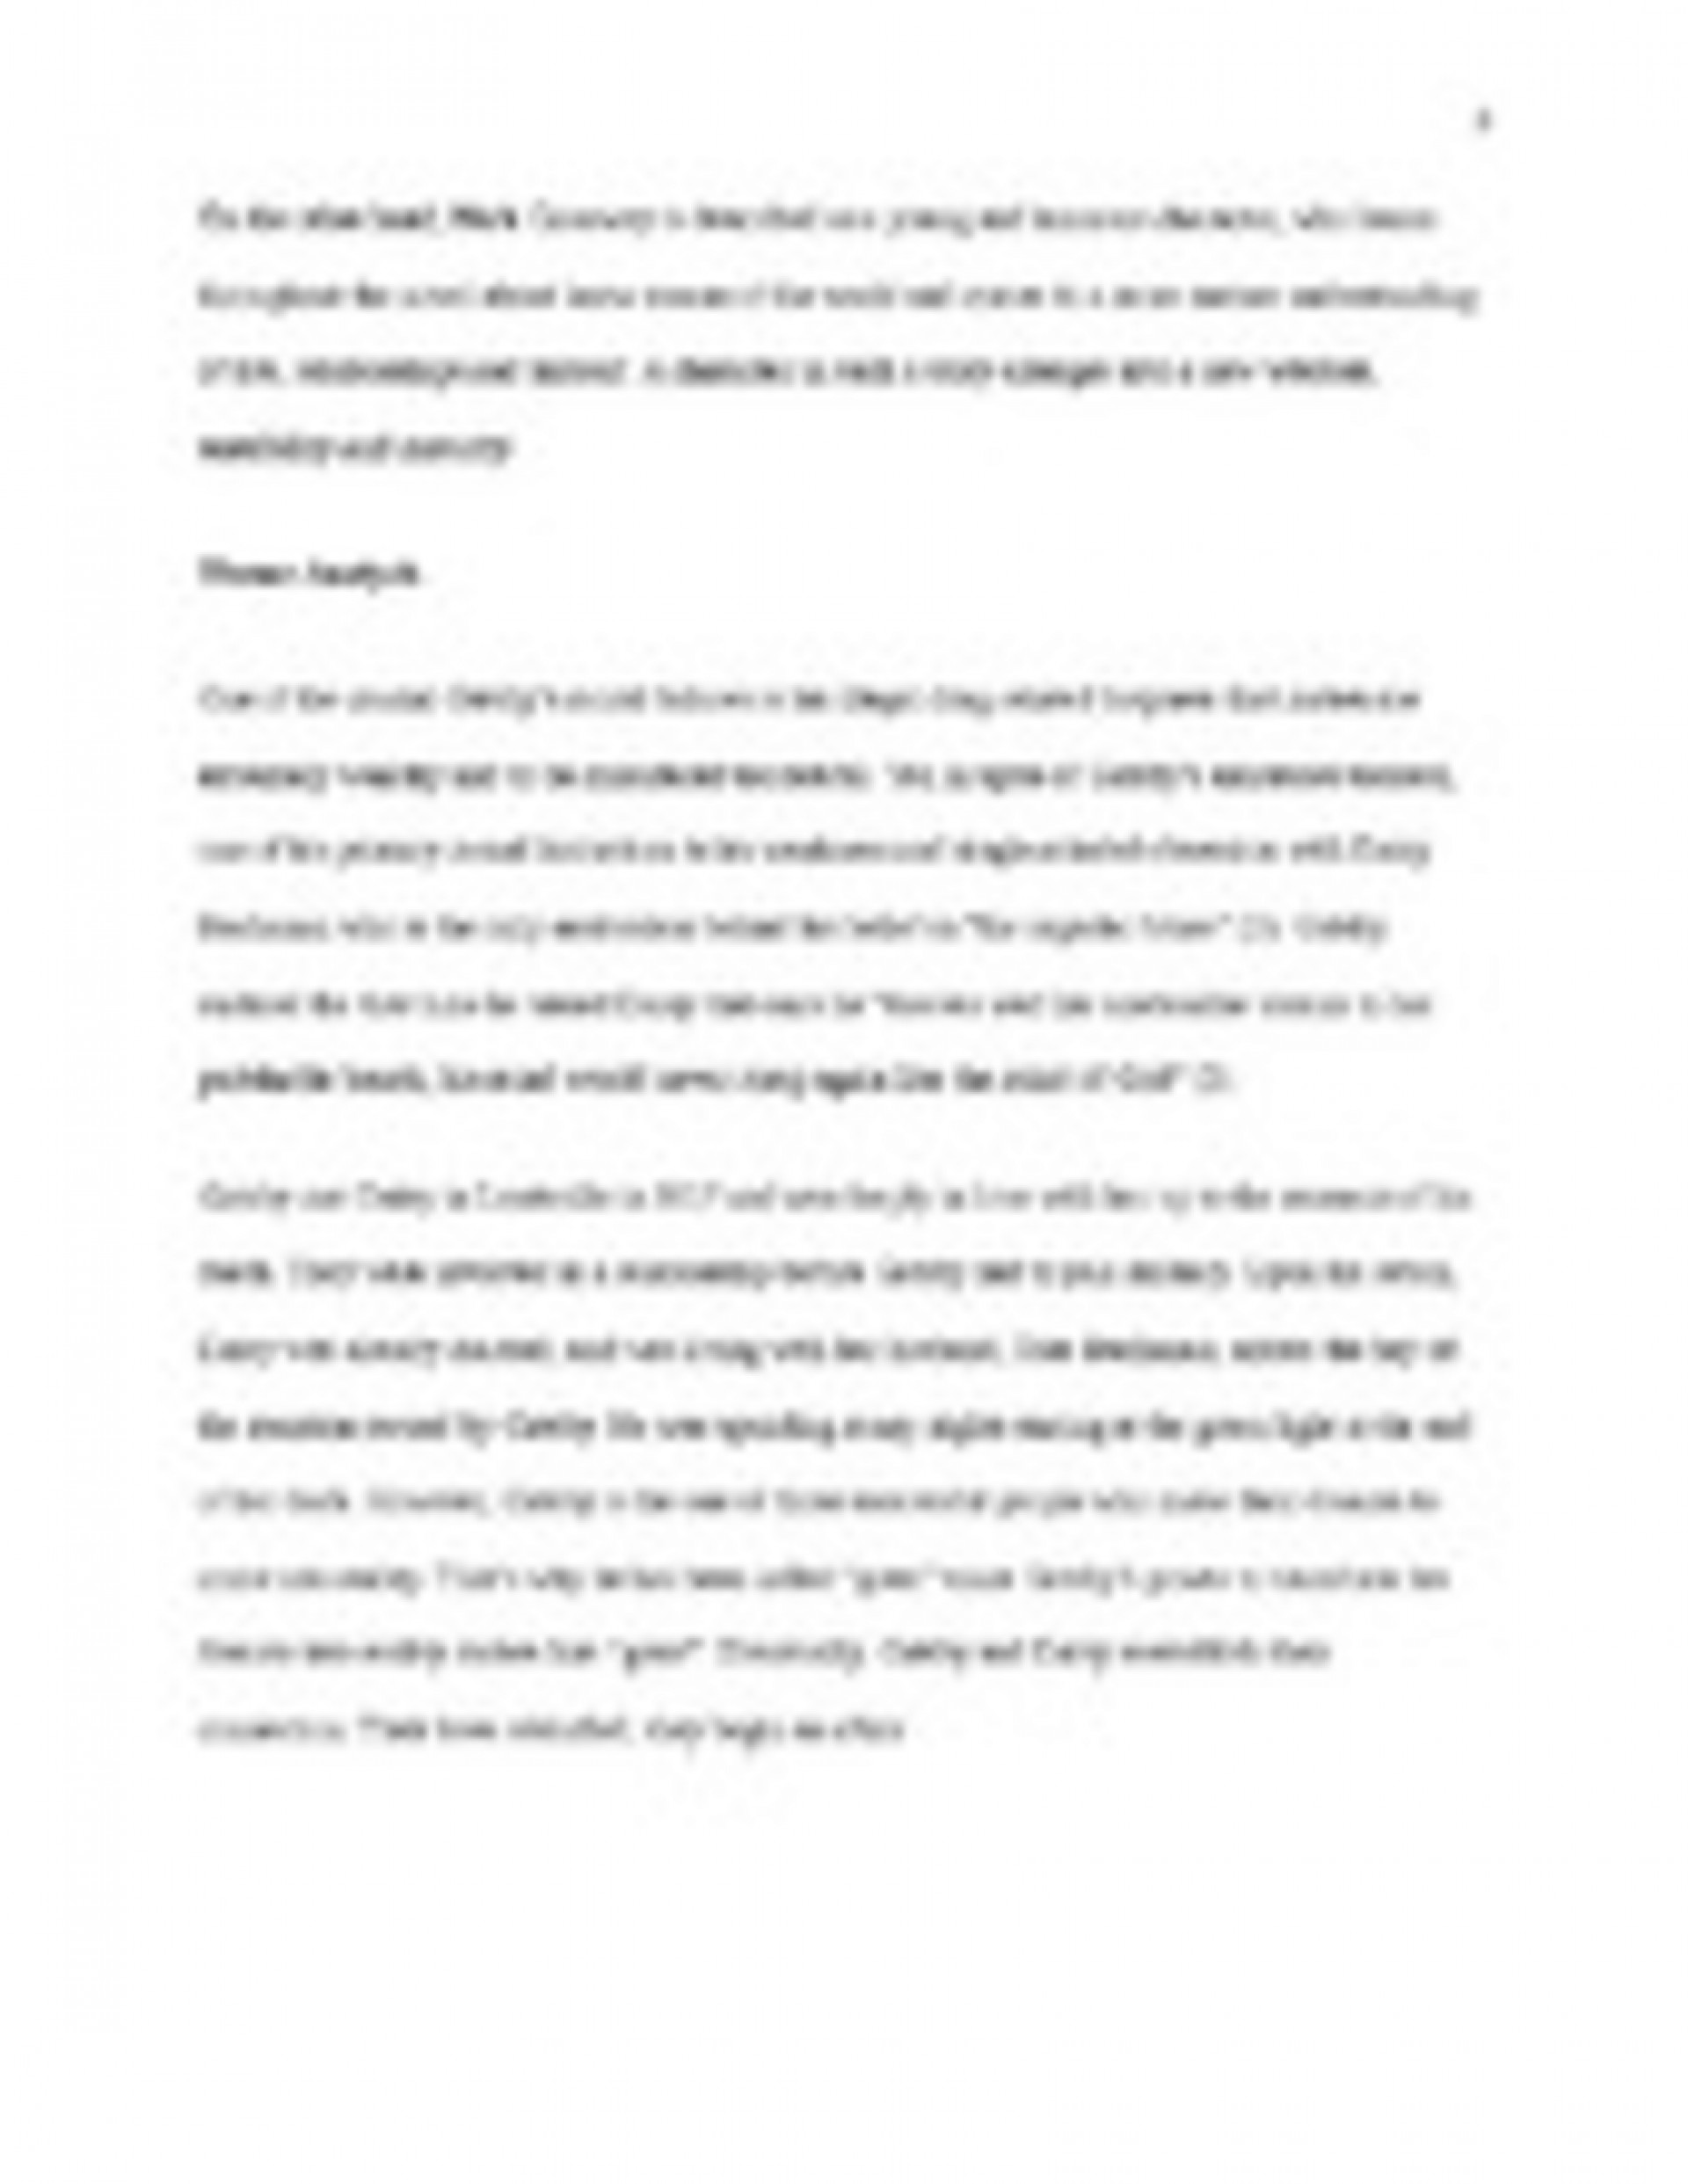 005 The Great Gatsby Themes Essay Example Stirring Theme Analysis And Symbolism 1920